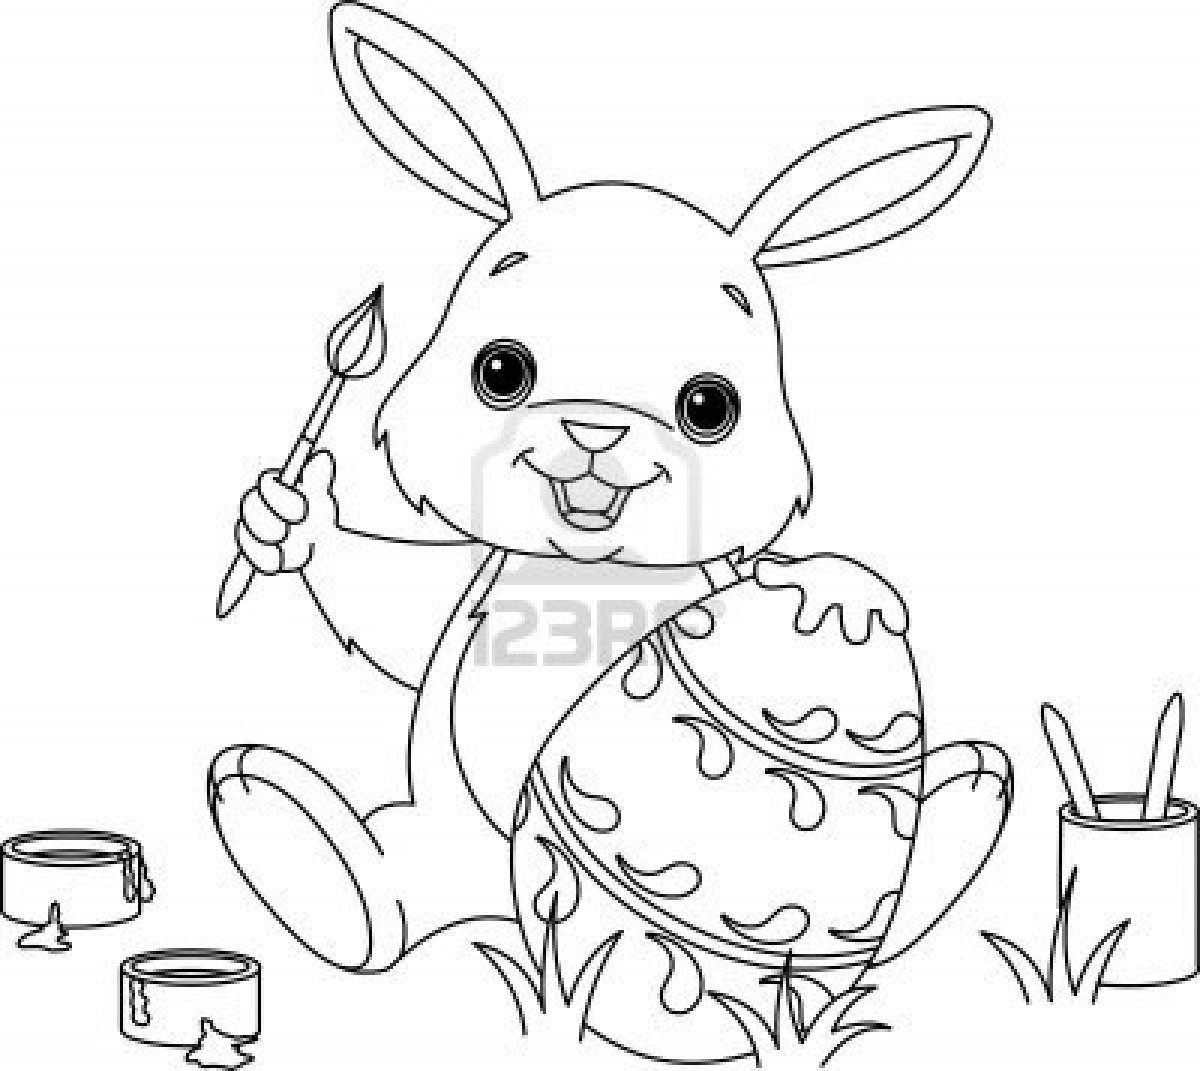 Printable Easter Coloring Pages at GetDrawings.com | Free for ...